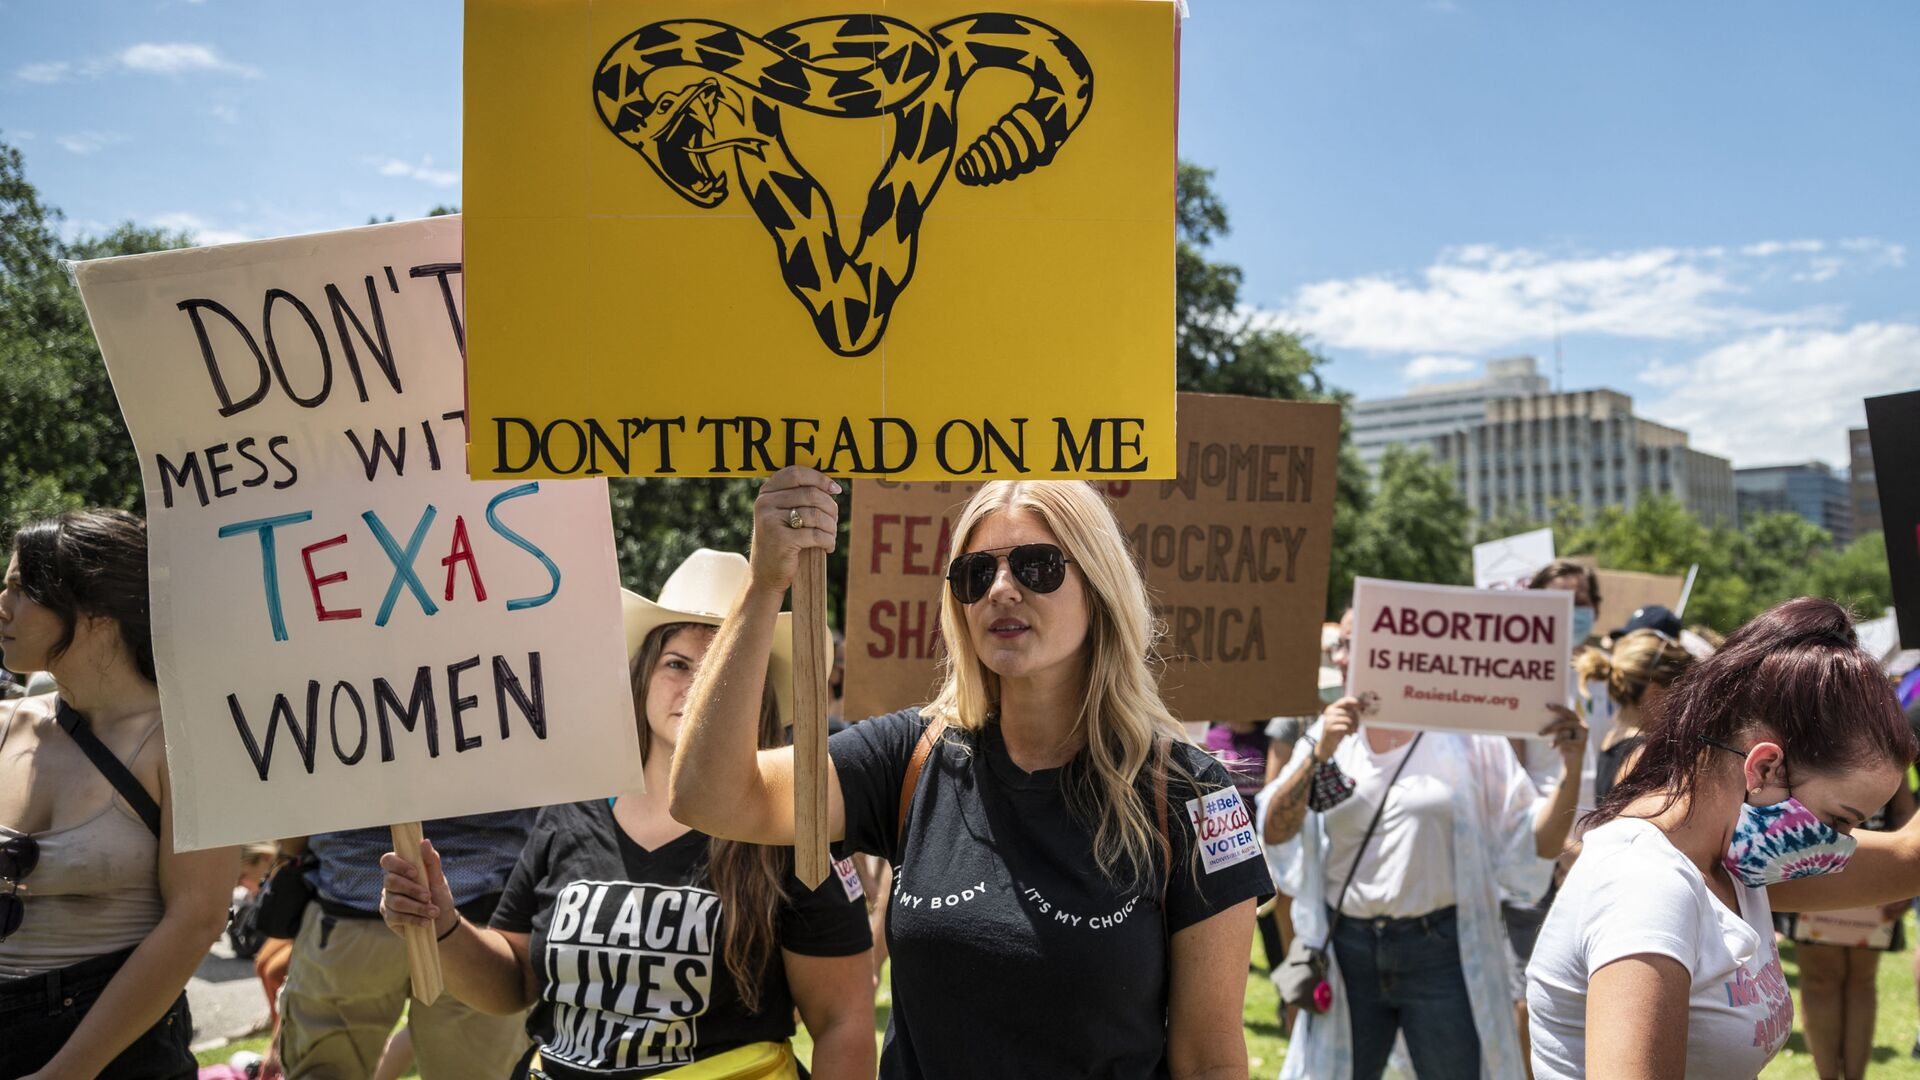 Protesters hold up signs at a protest outside the Texas state capitol on May 29, 2021 in Austin, Texas. - Sputnik International, 1920, 08.09.2021